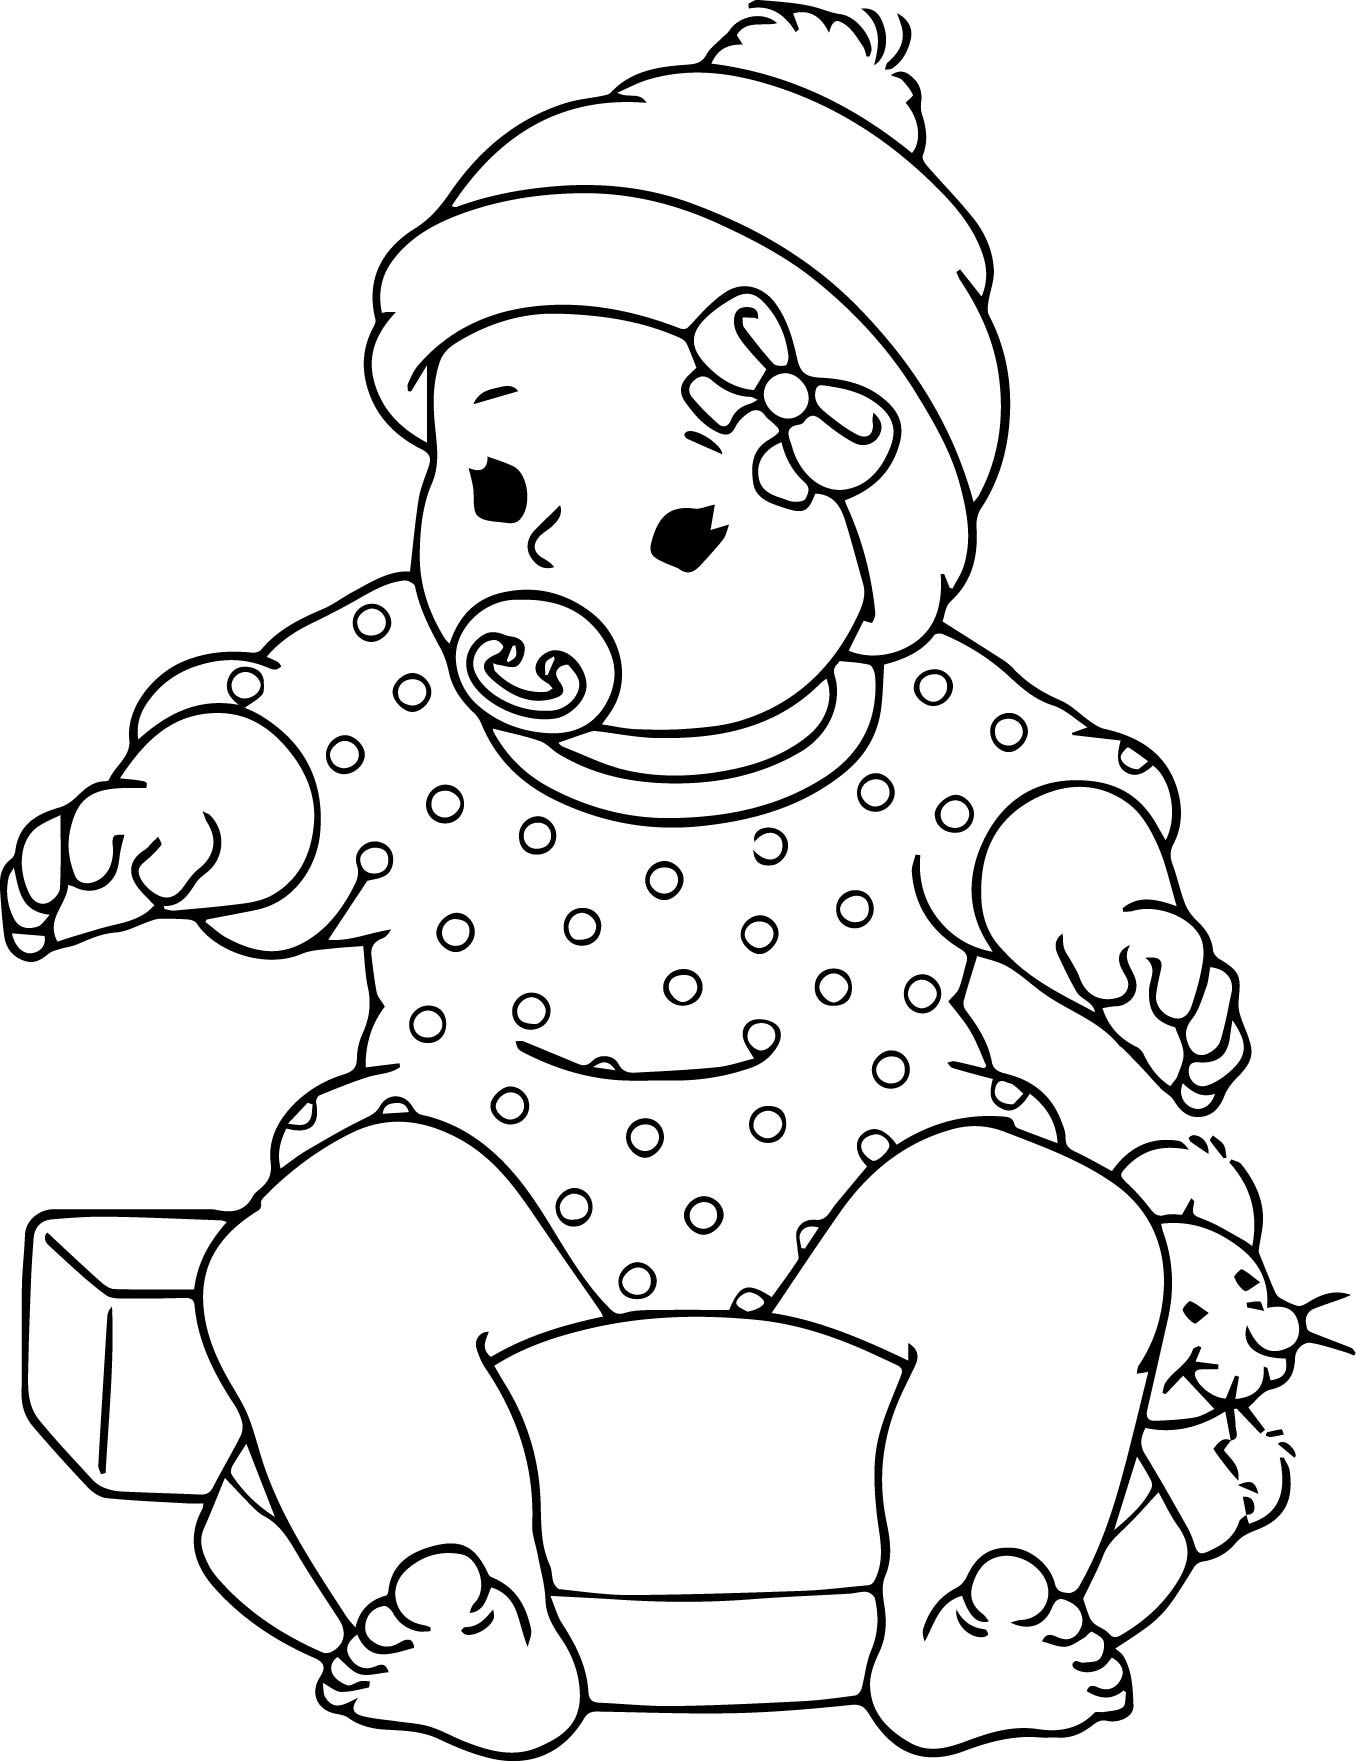 Baby Doll Coloring Page At Getdrawings